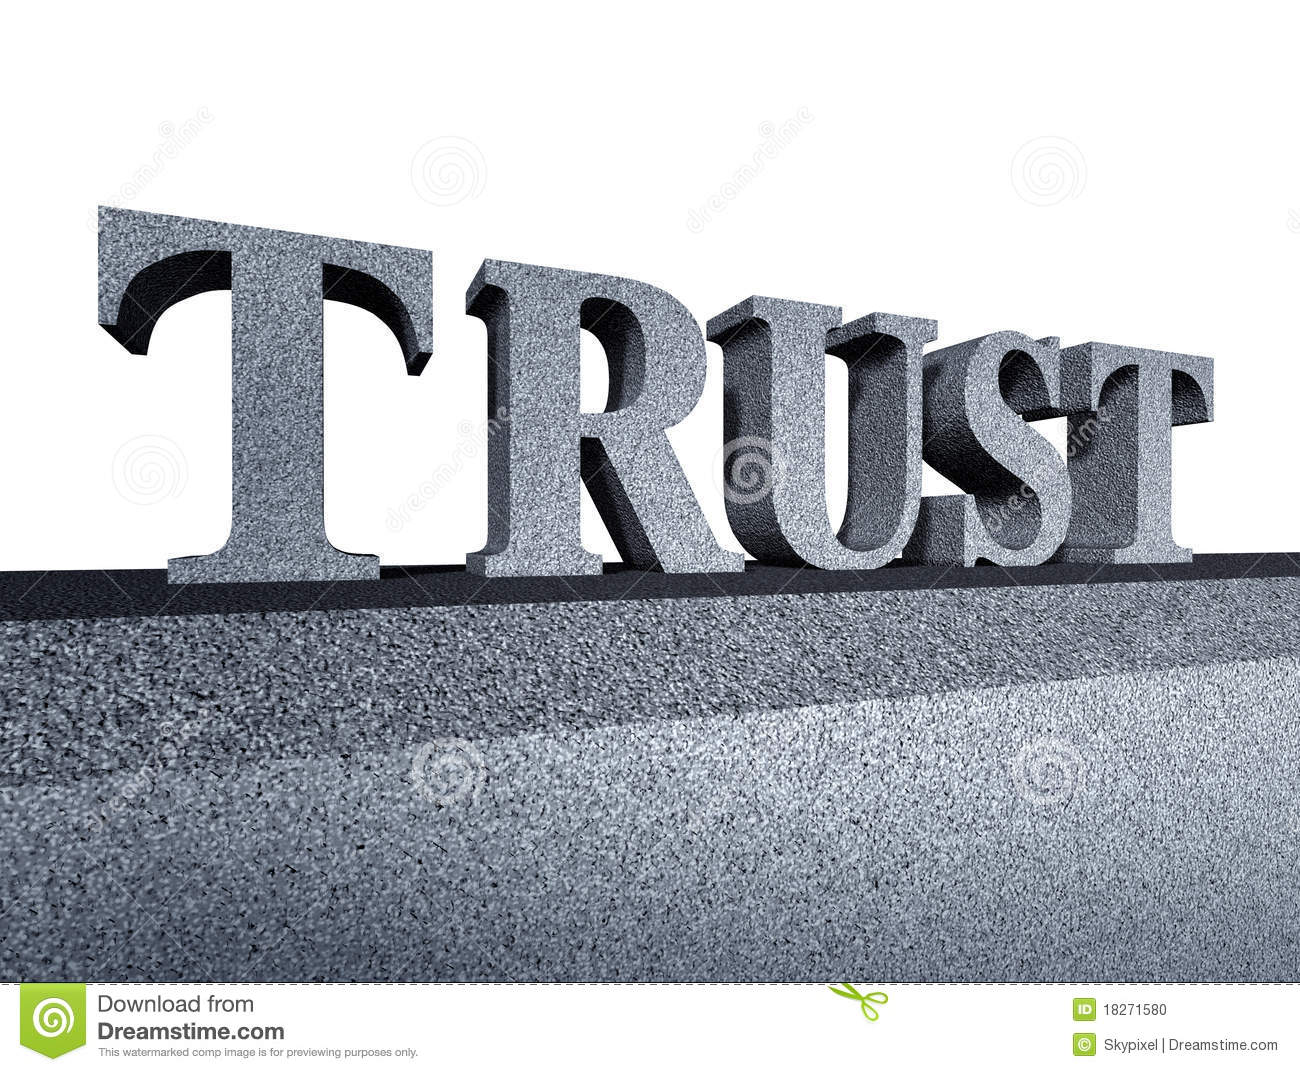 Trust honor financial business symbol integrity stock illustration trust honor financial business symbol integrity stock photo biocorpaavc Image collections